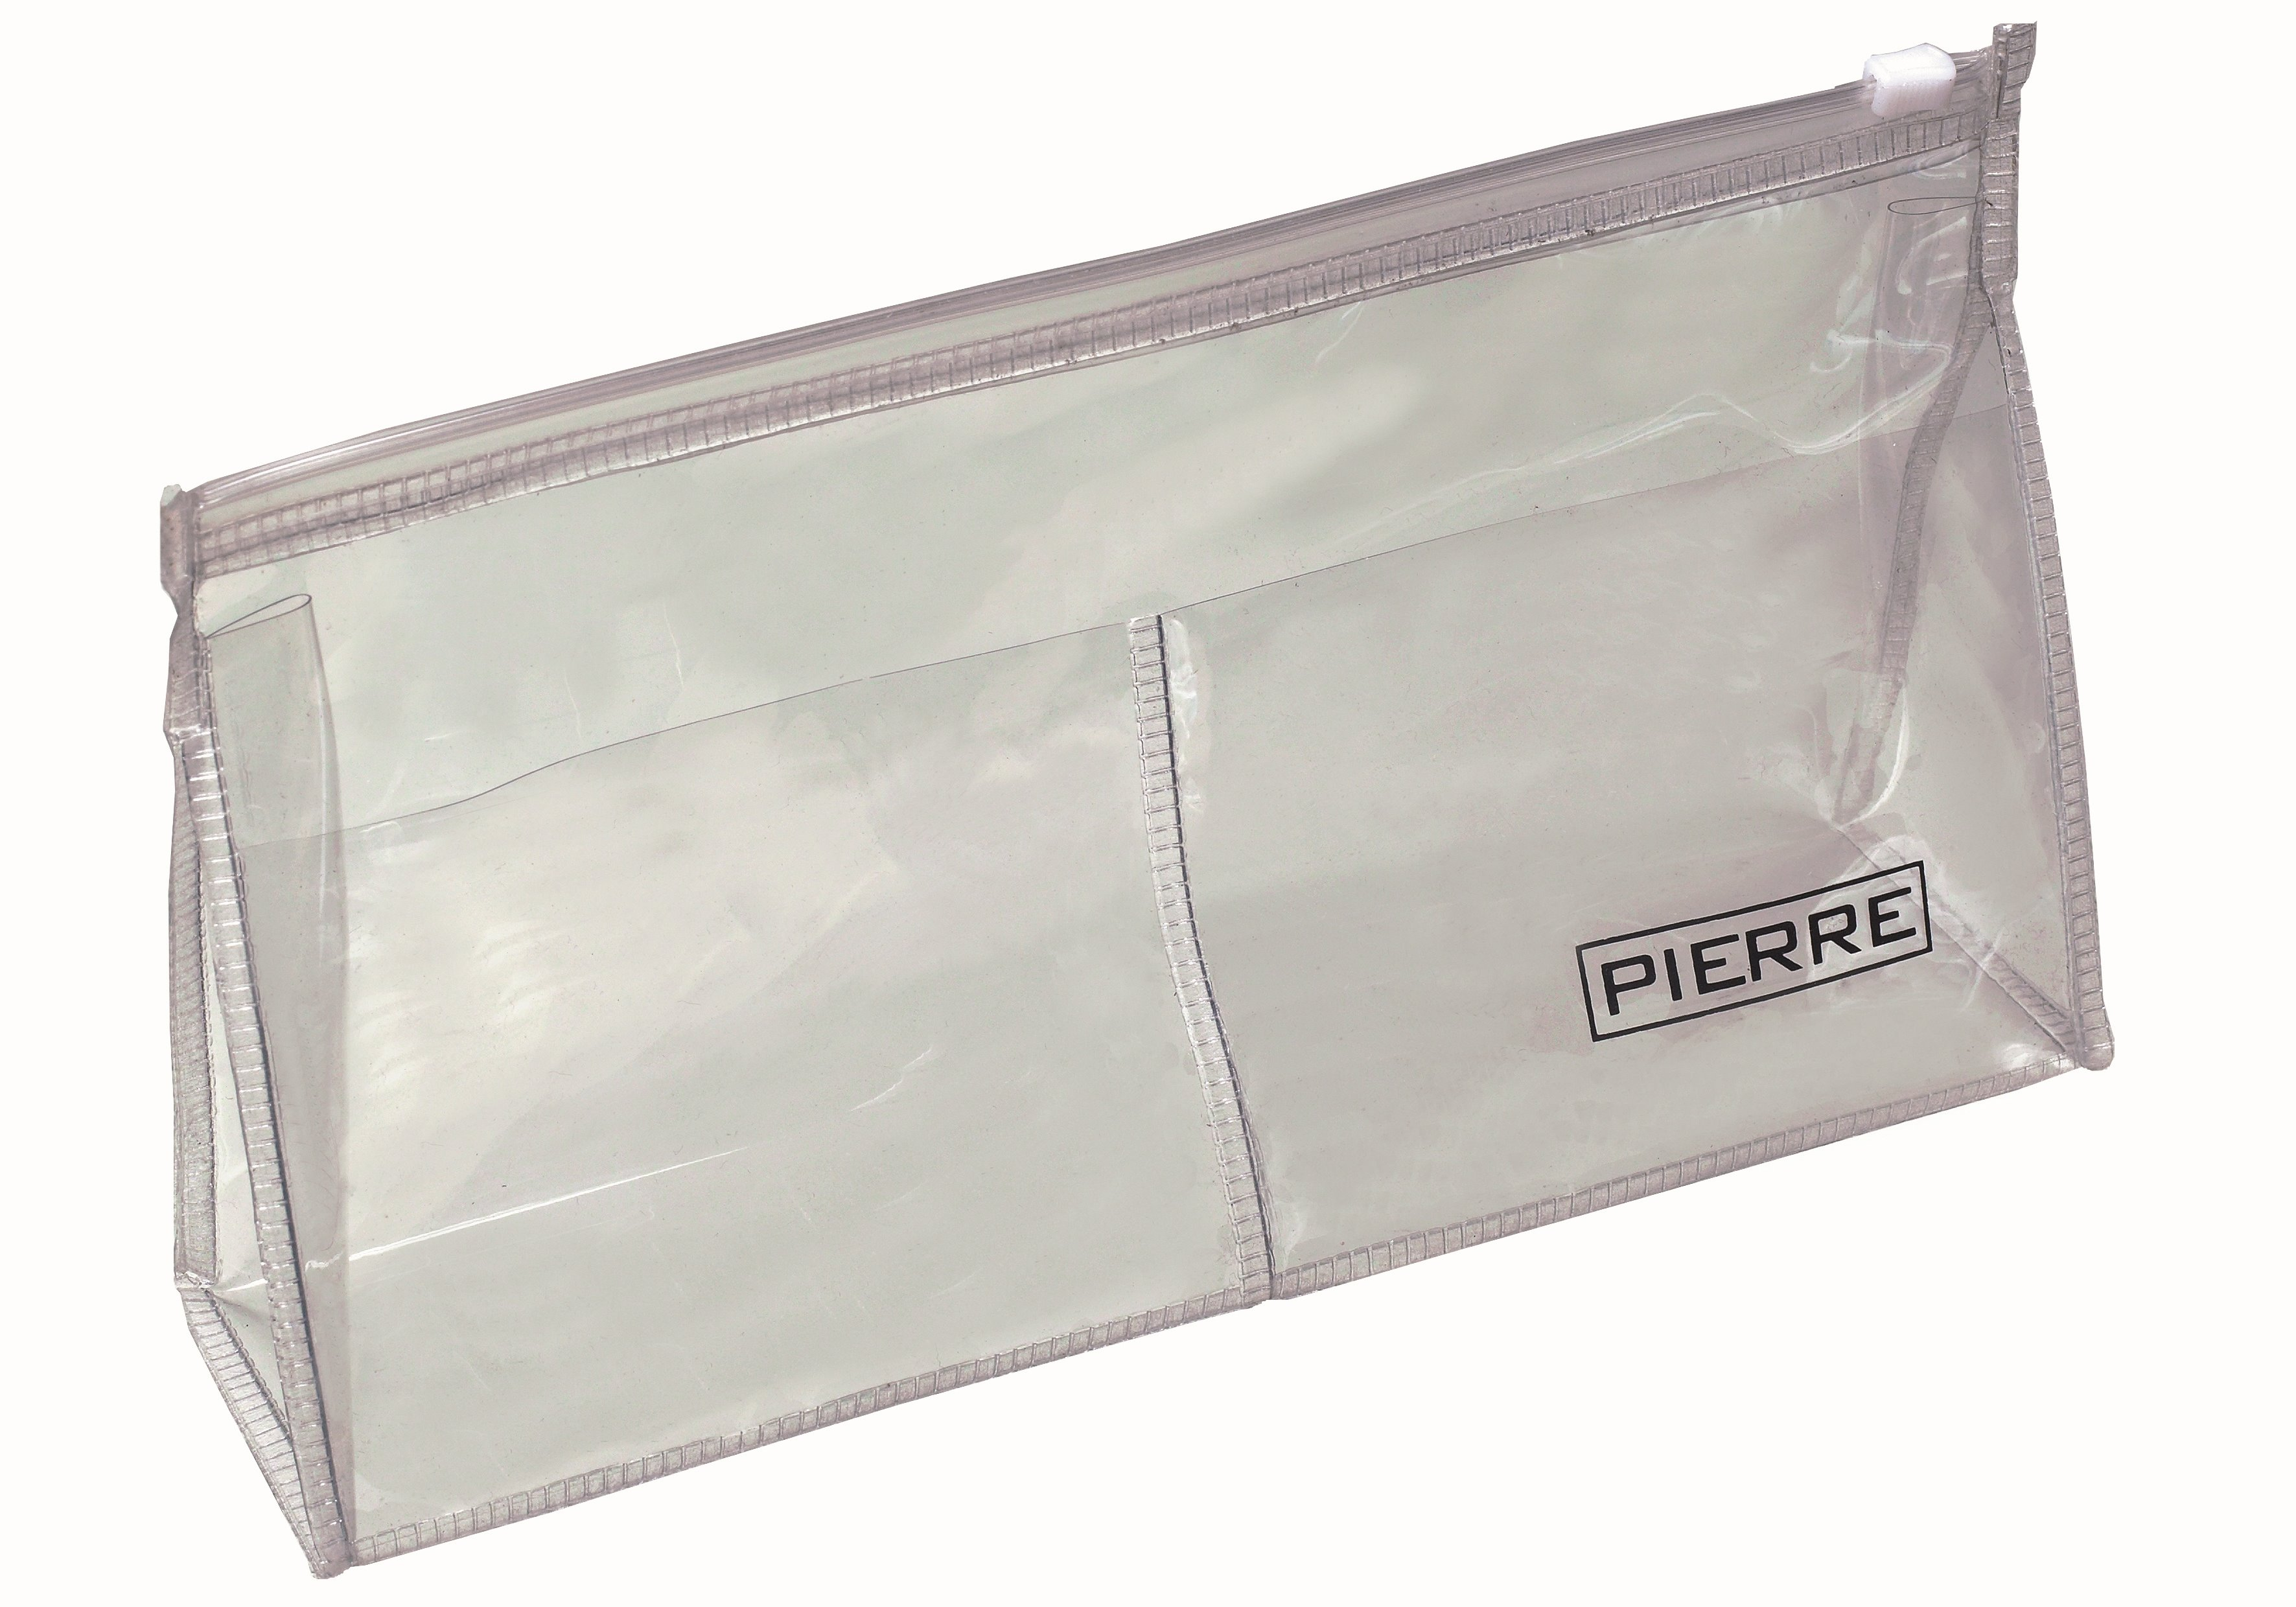 Transparent toilet bag in strong plastic. Good compartment design with one large compartment and two smaller pockets. Zip closure to ensure the contents stay in the toilet bag throughout your journey. Complies with the stricter security rules which many airlines impose with regard to cosmetics and toiletries in your hand luggage while onboard the plane. The perfect choice if you want to bring your toilet bag as part of your hand luggage.